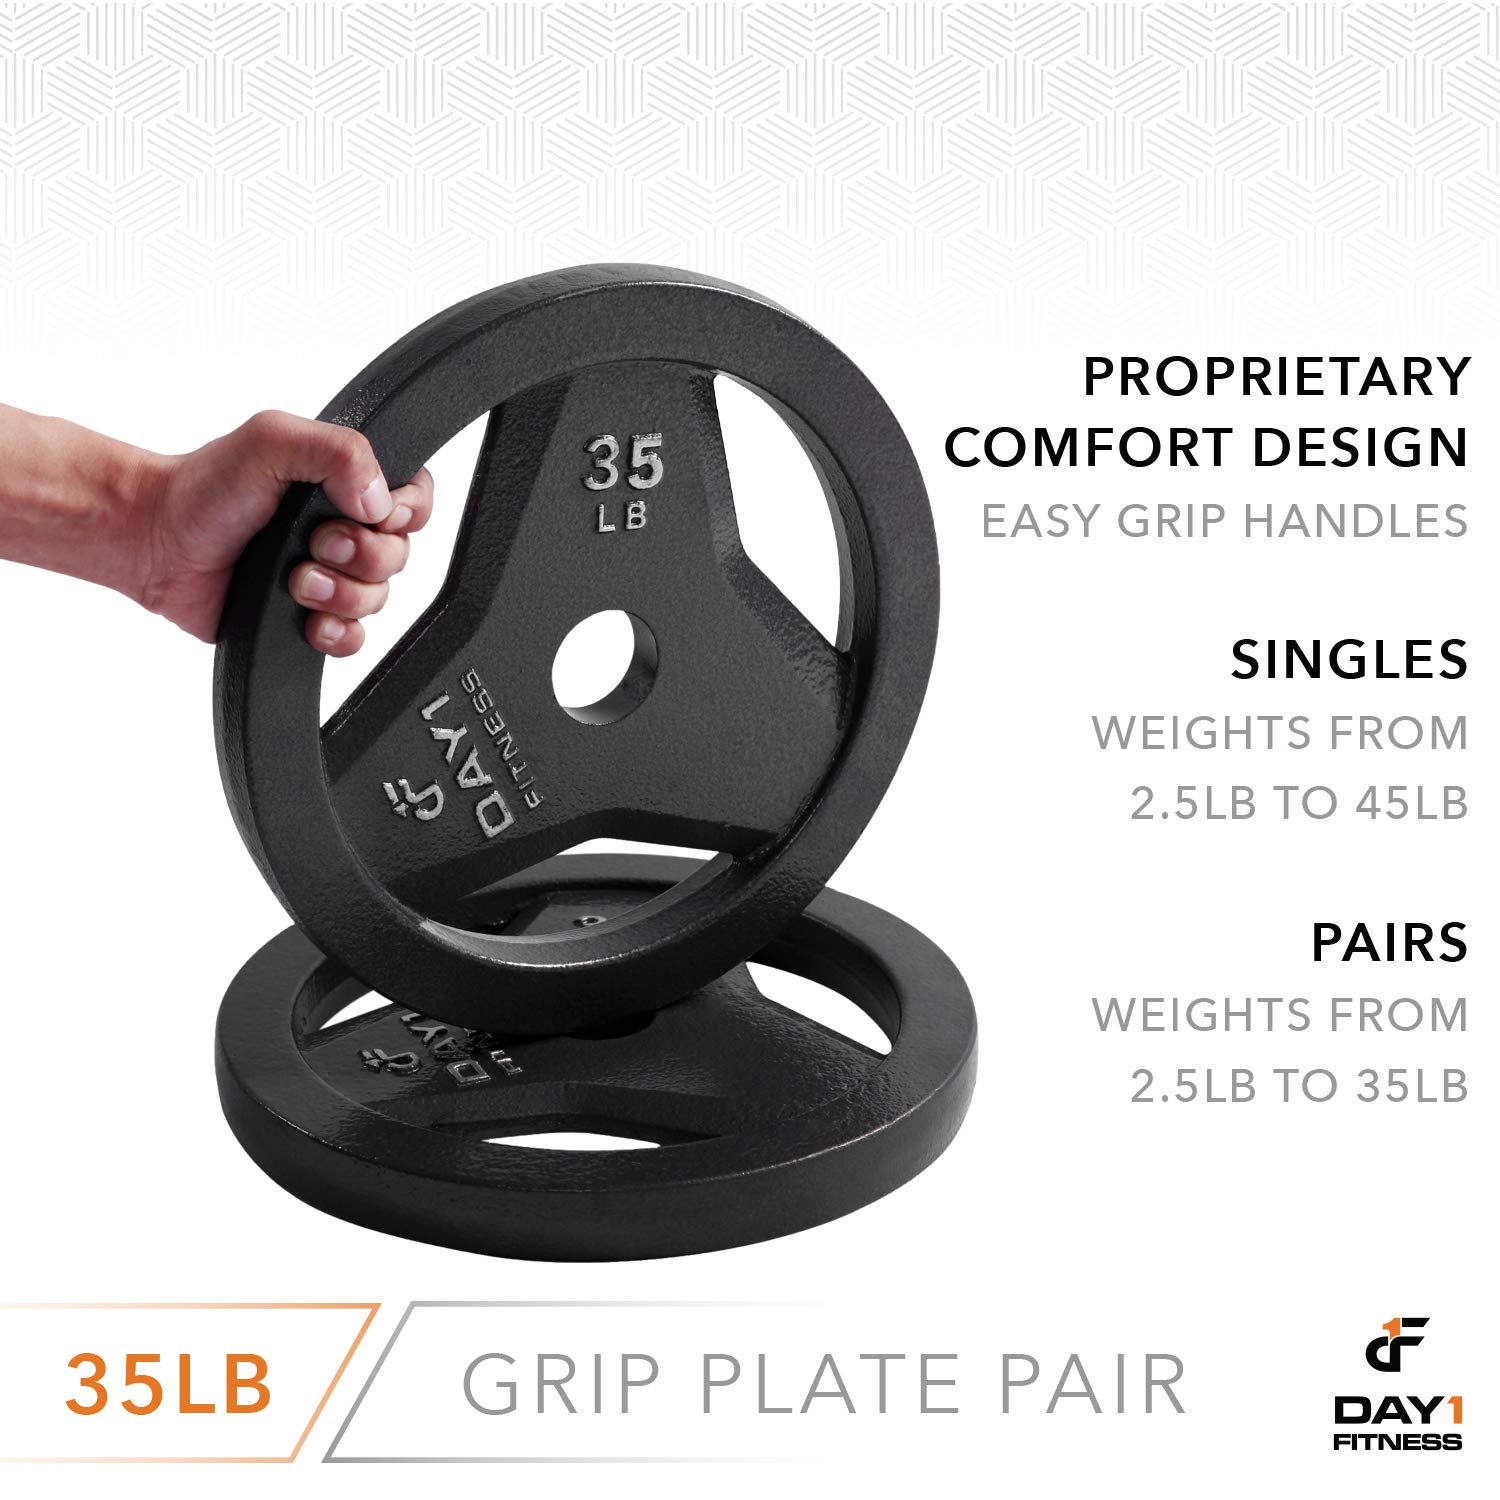 """Day 1 Fitness Cast Iron Olympic 2-Inch Grip Plate for Barbell, 35 Pound Set of 2 Plates Iron Grip Plates for Weightlifting, Crossfit - 2"""" Weight Plate for Bodybuilding by Day 1 Fitness (Image #5)"""